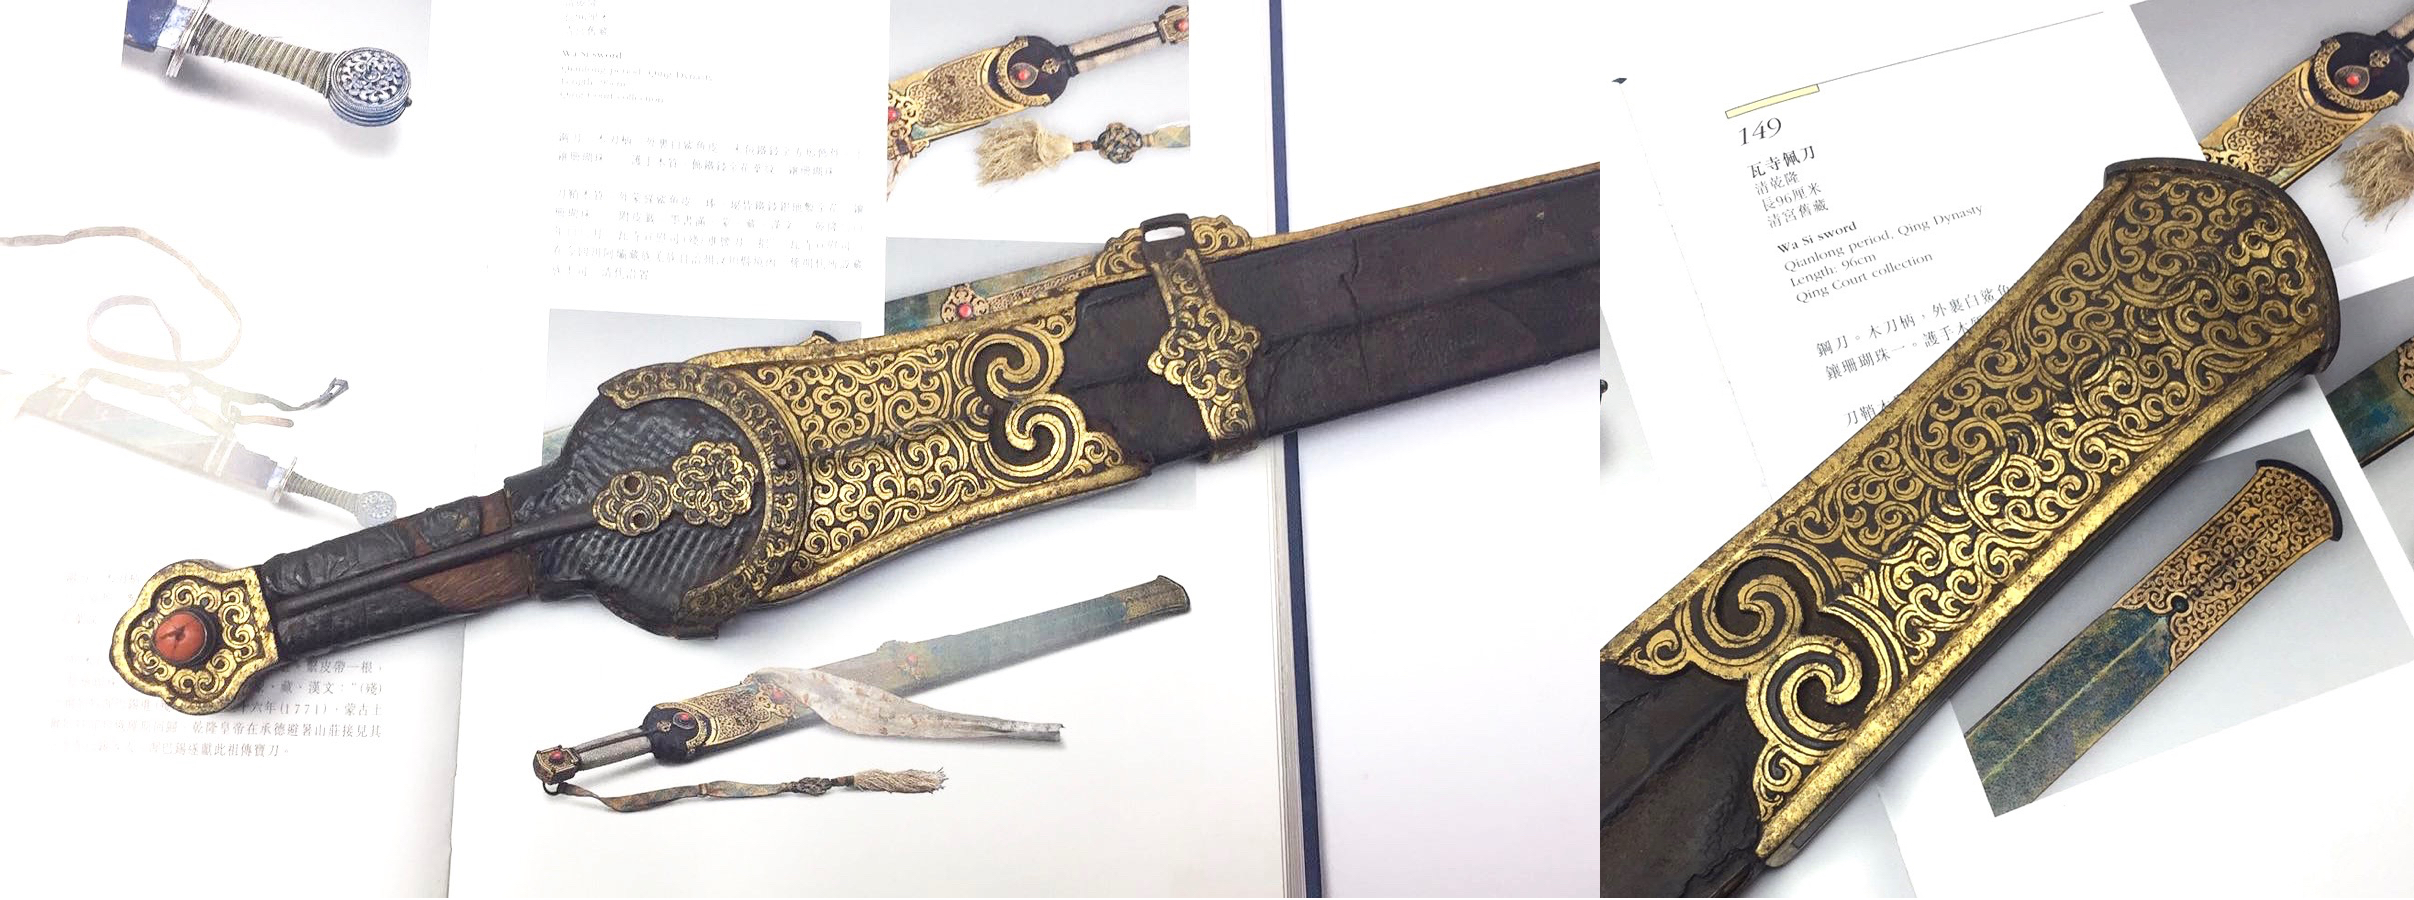 Jinchuan royal sword